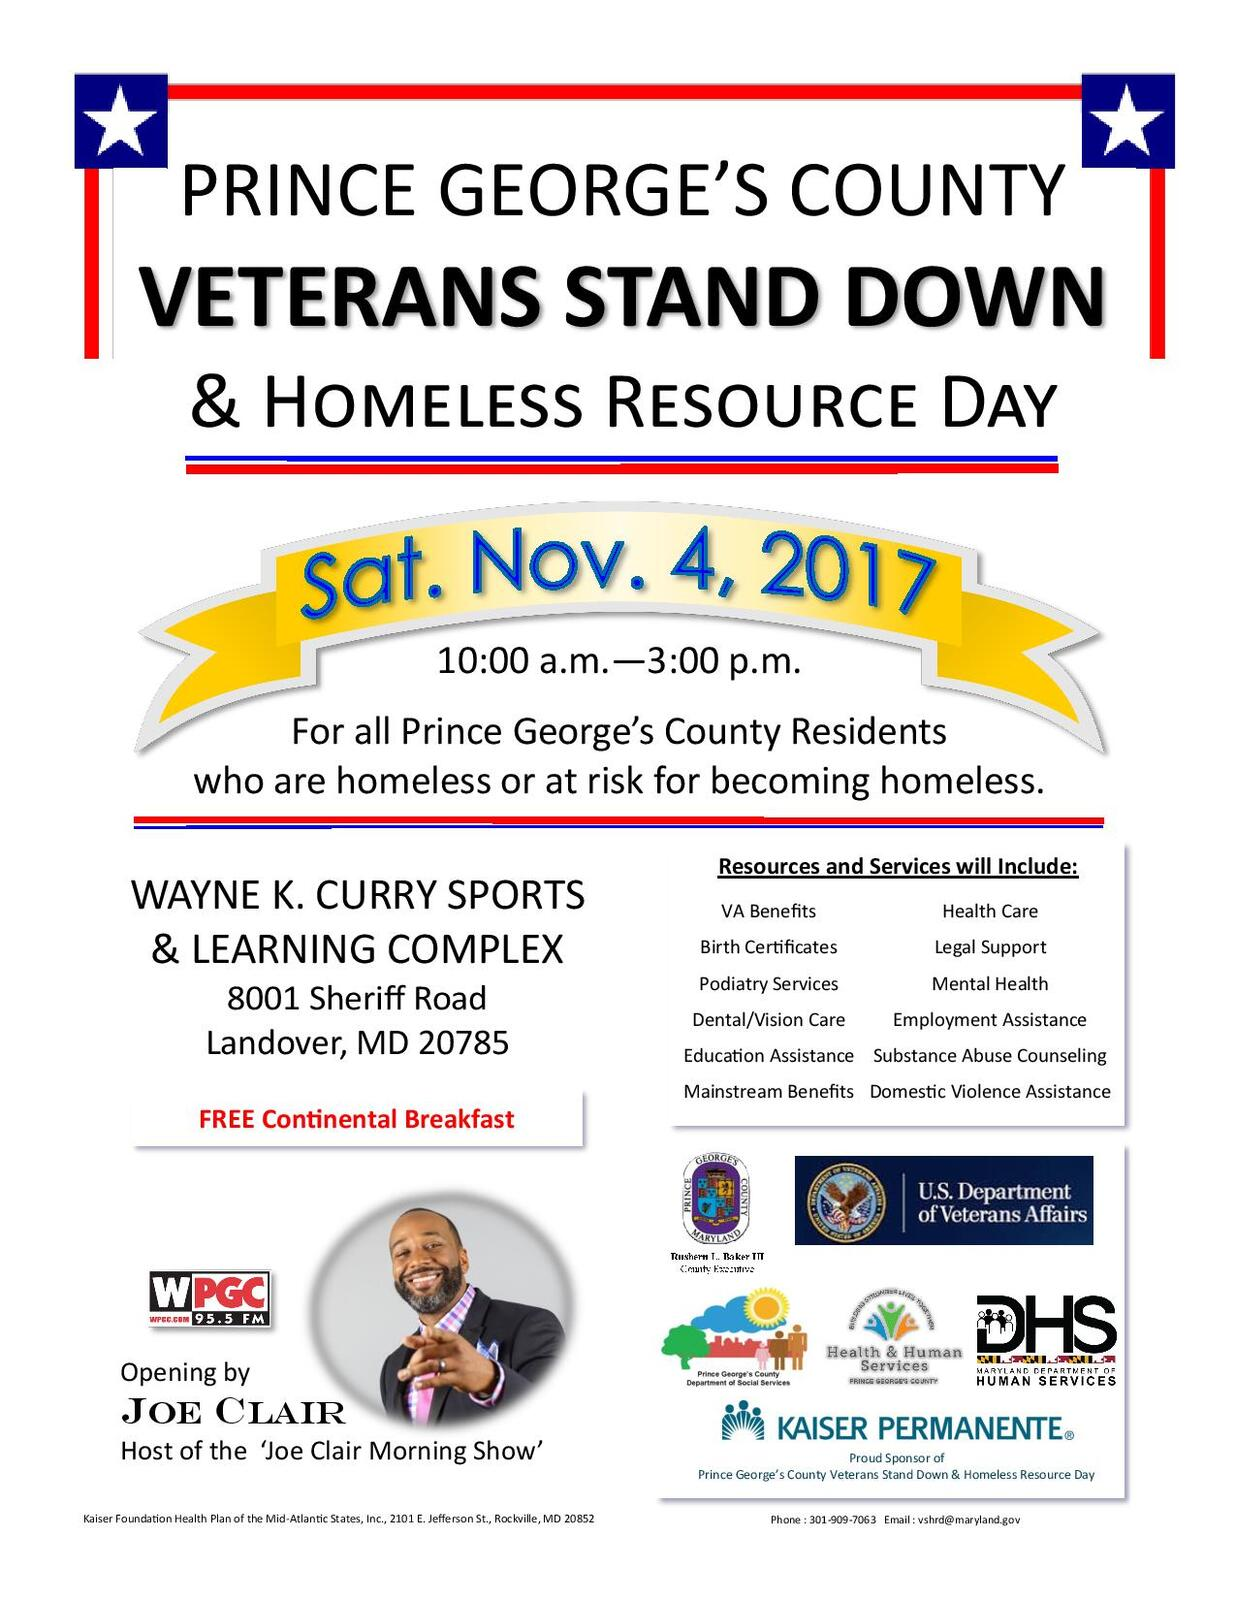 Veterans Stand Down Homeless Resource Day 2017 Prince Georges